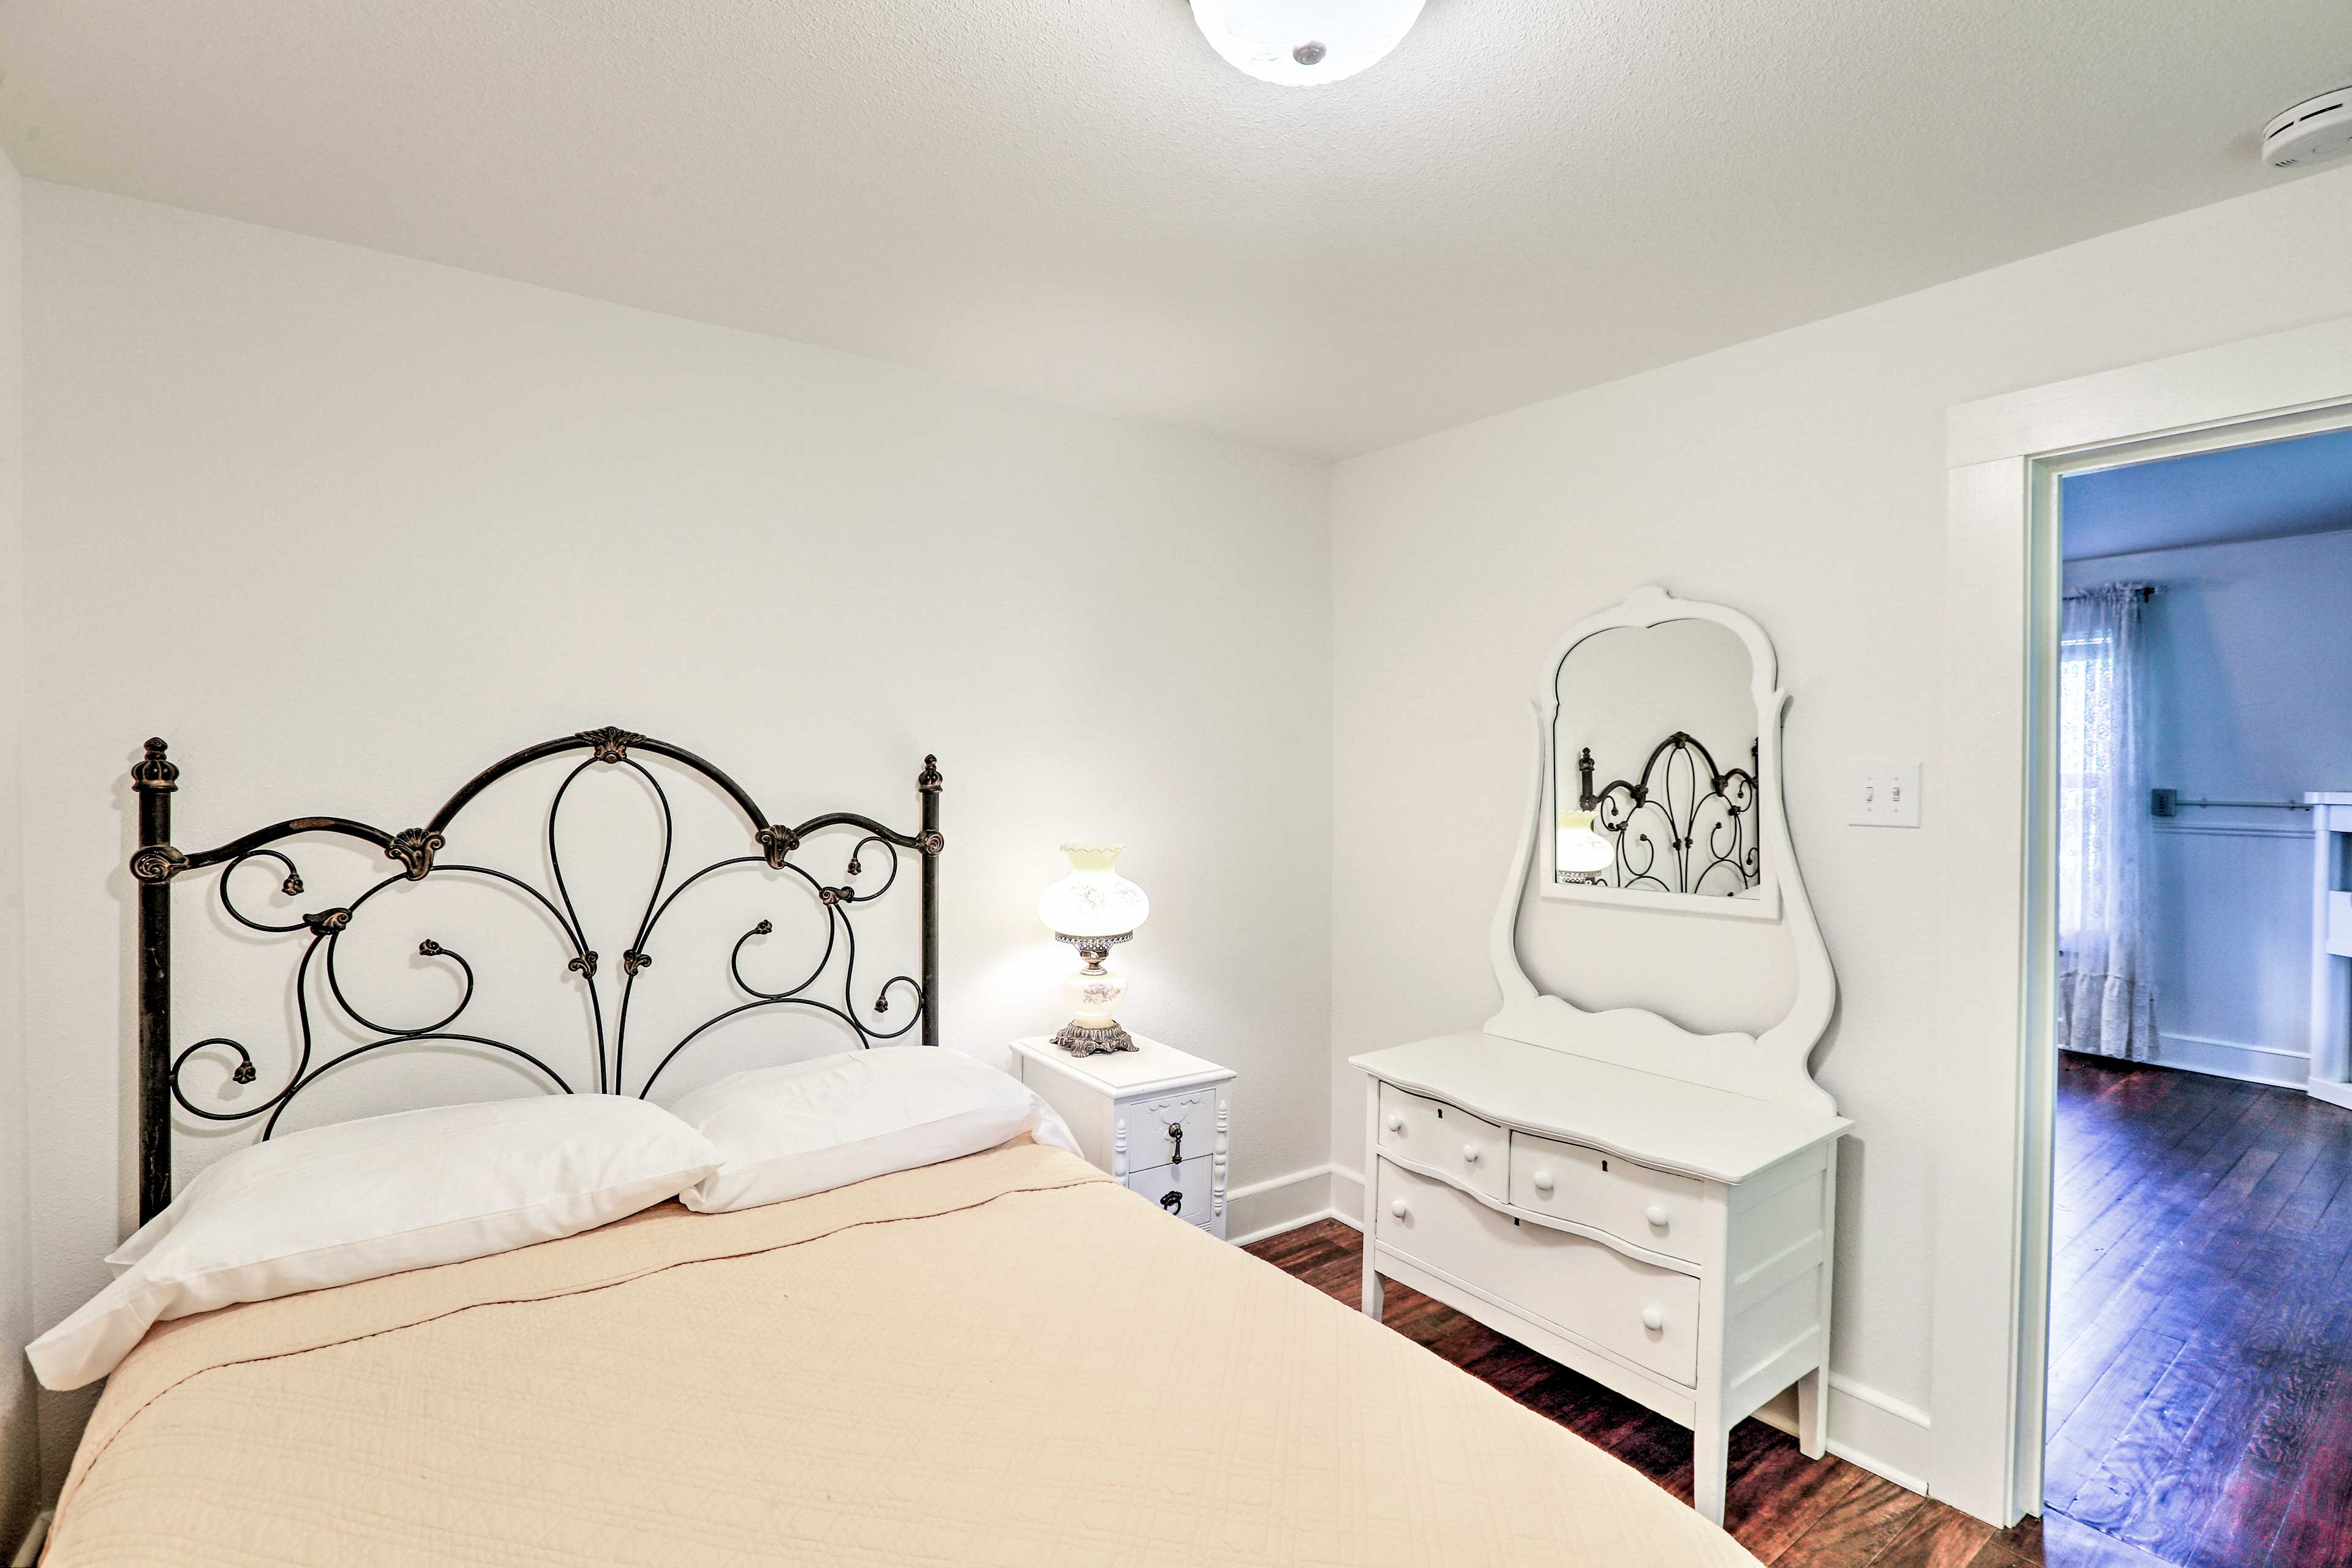 The yellow room includes a full-sized bed.